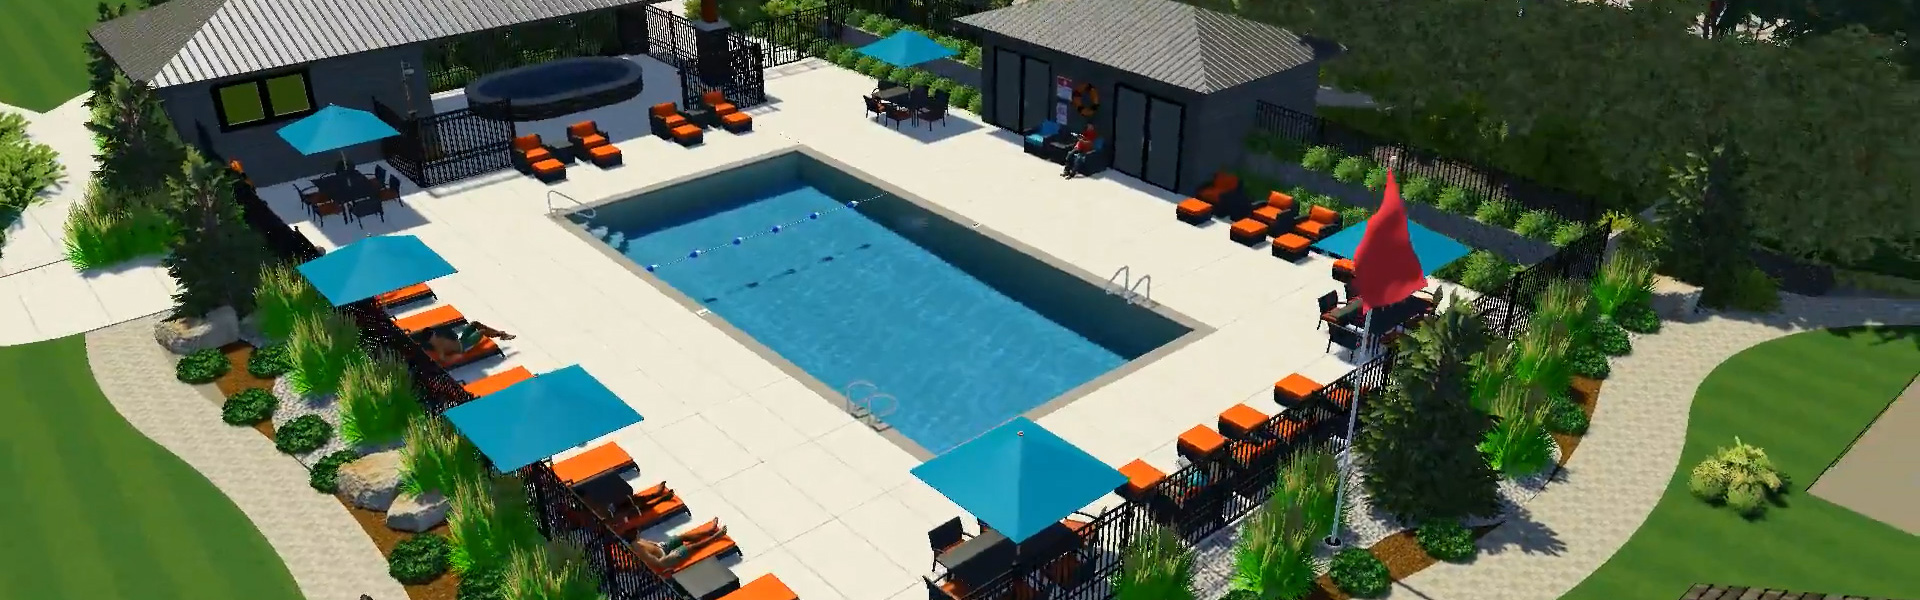 Rendering of the new pool at Ocean Trails Resort